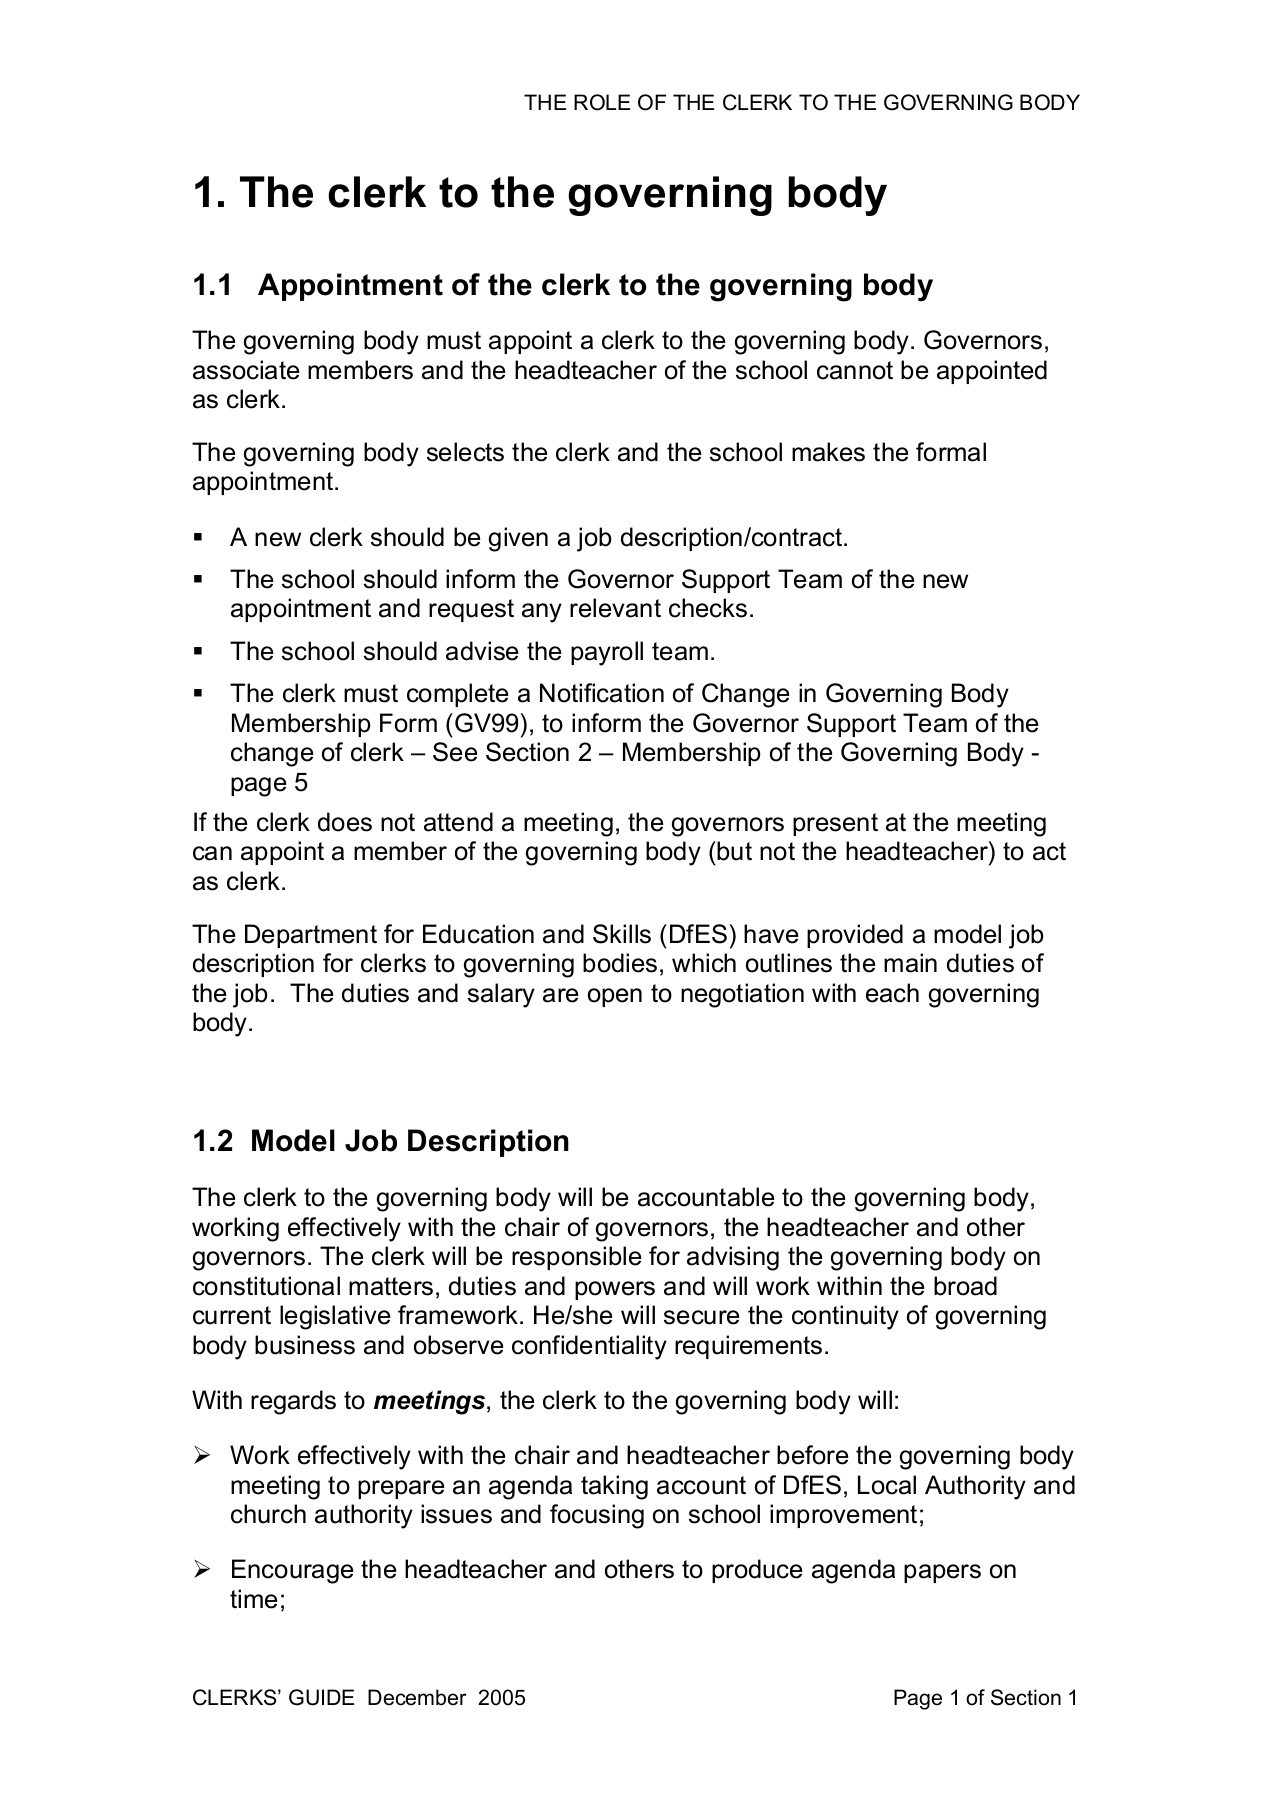 School Clerk Section 1 The Role Of The Clerk To The Governing Body Pages 1